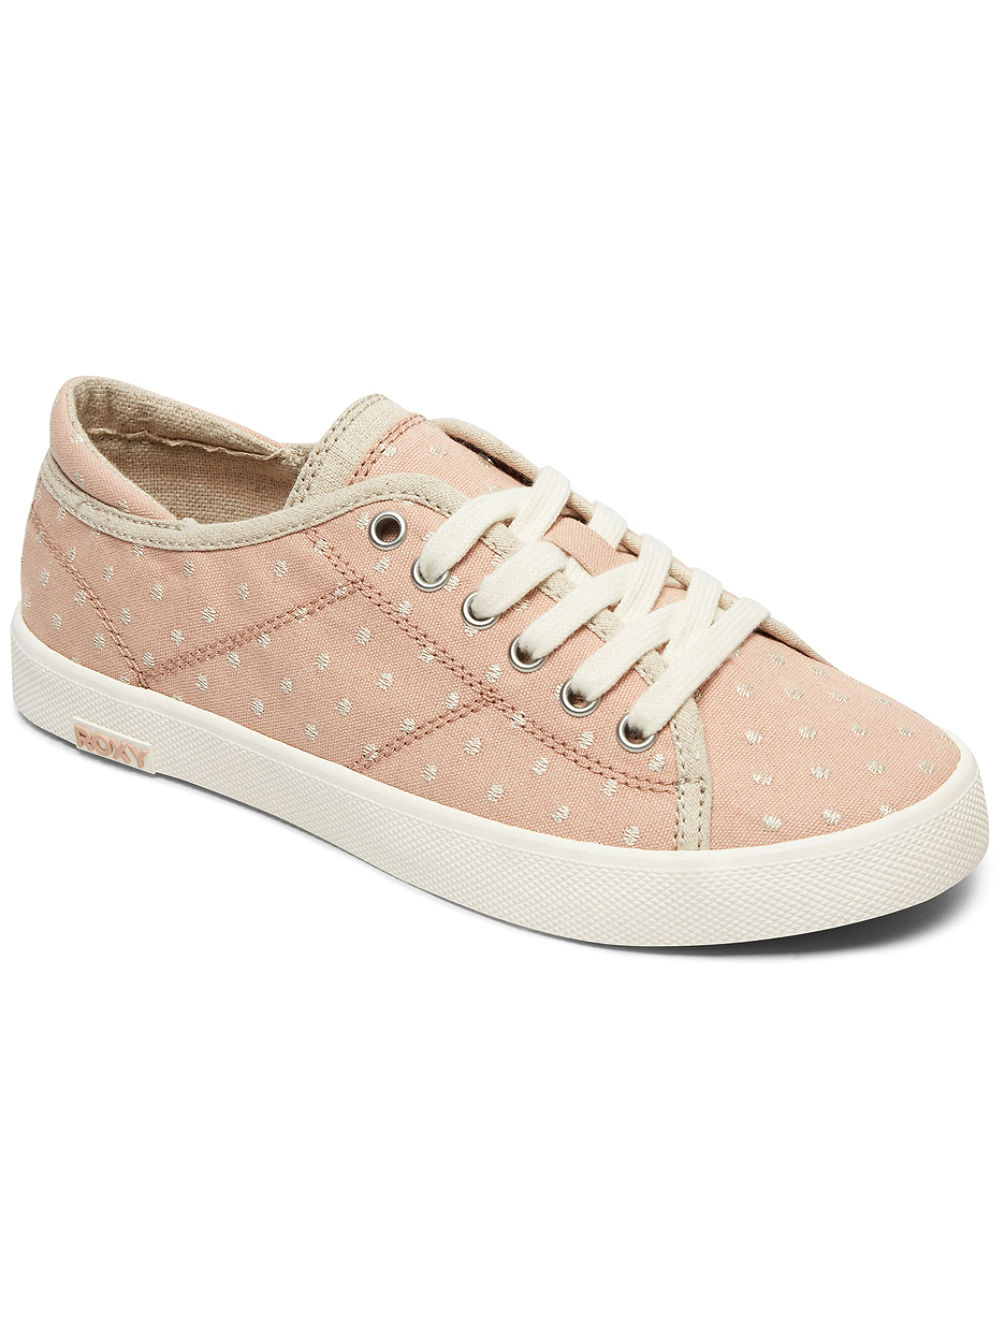 North Shore Sneakers Women